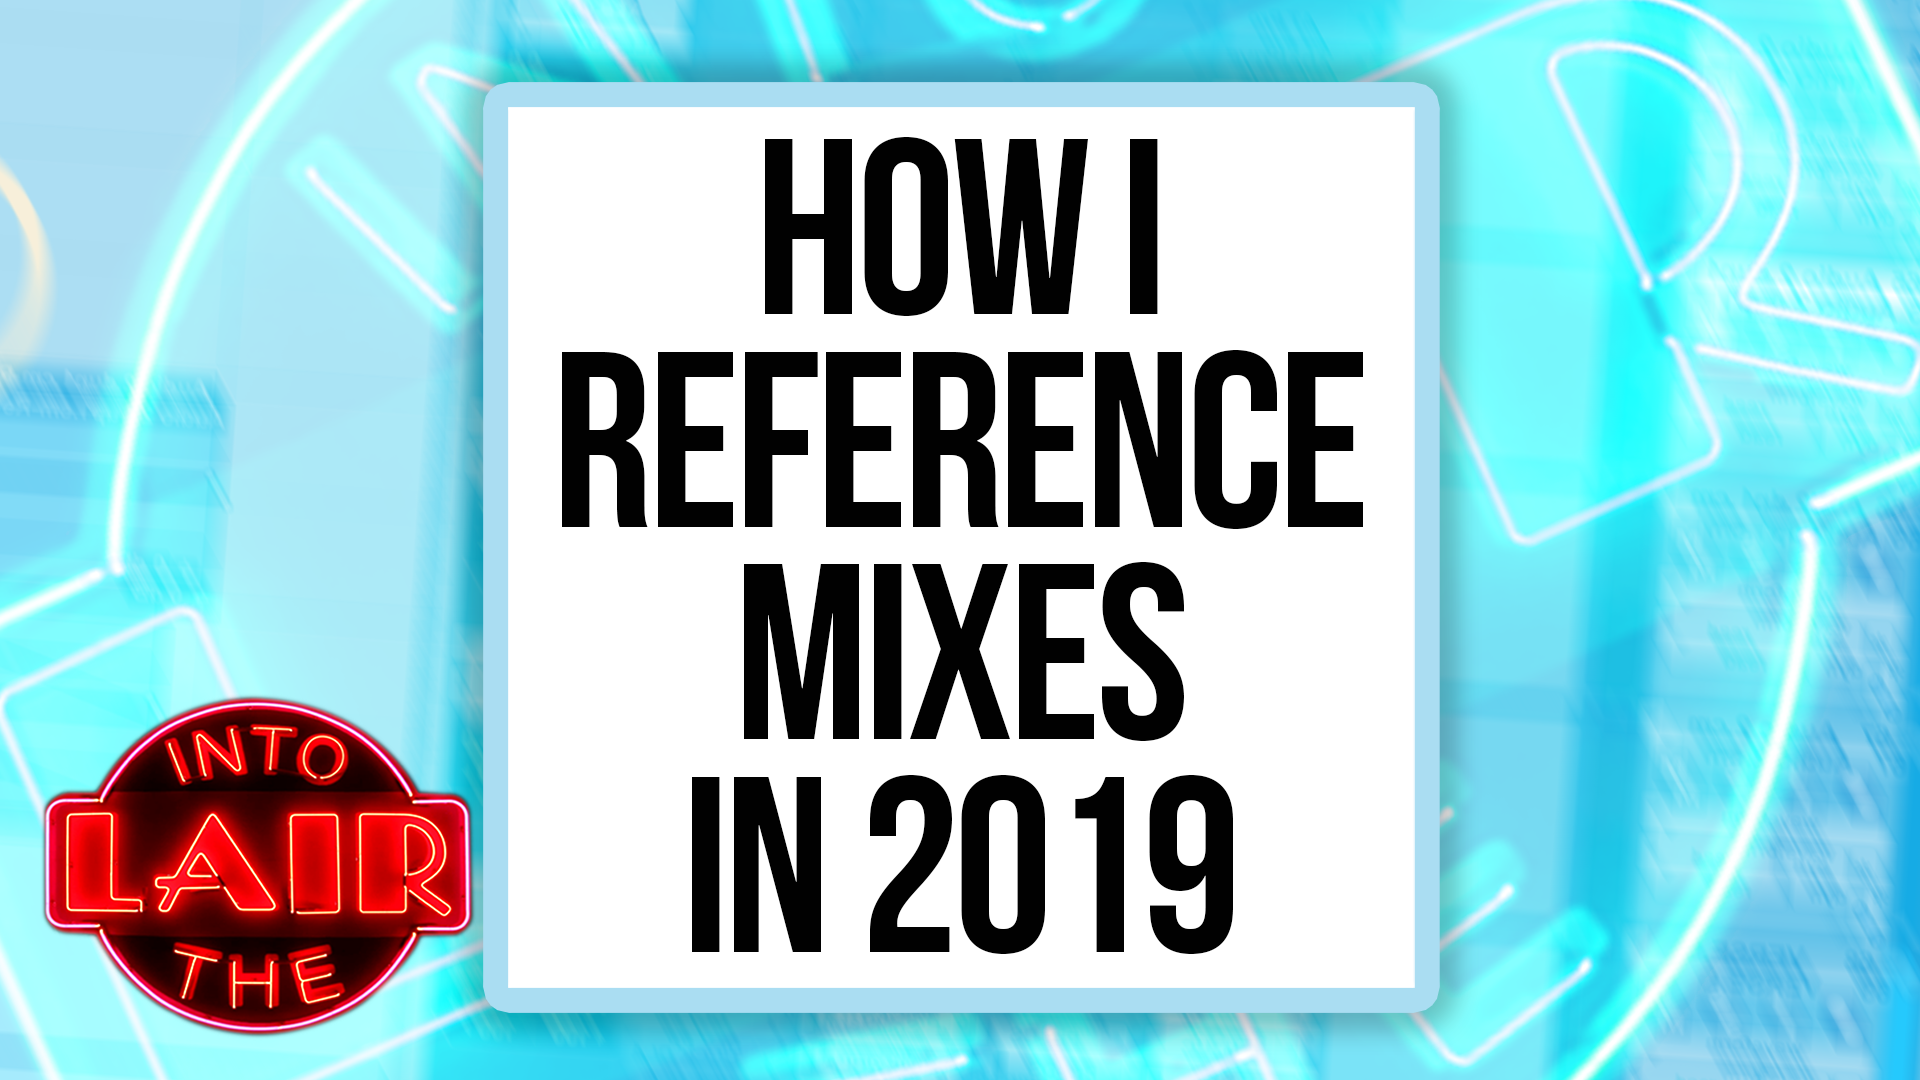 How I Reference Mixes in 2019